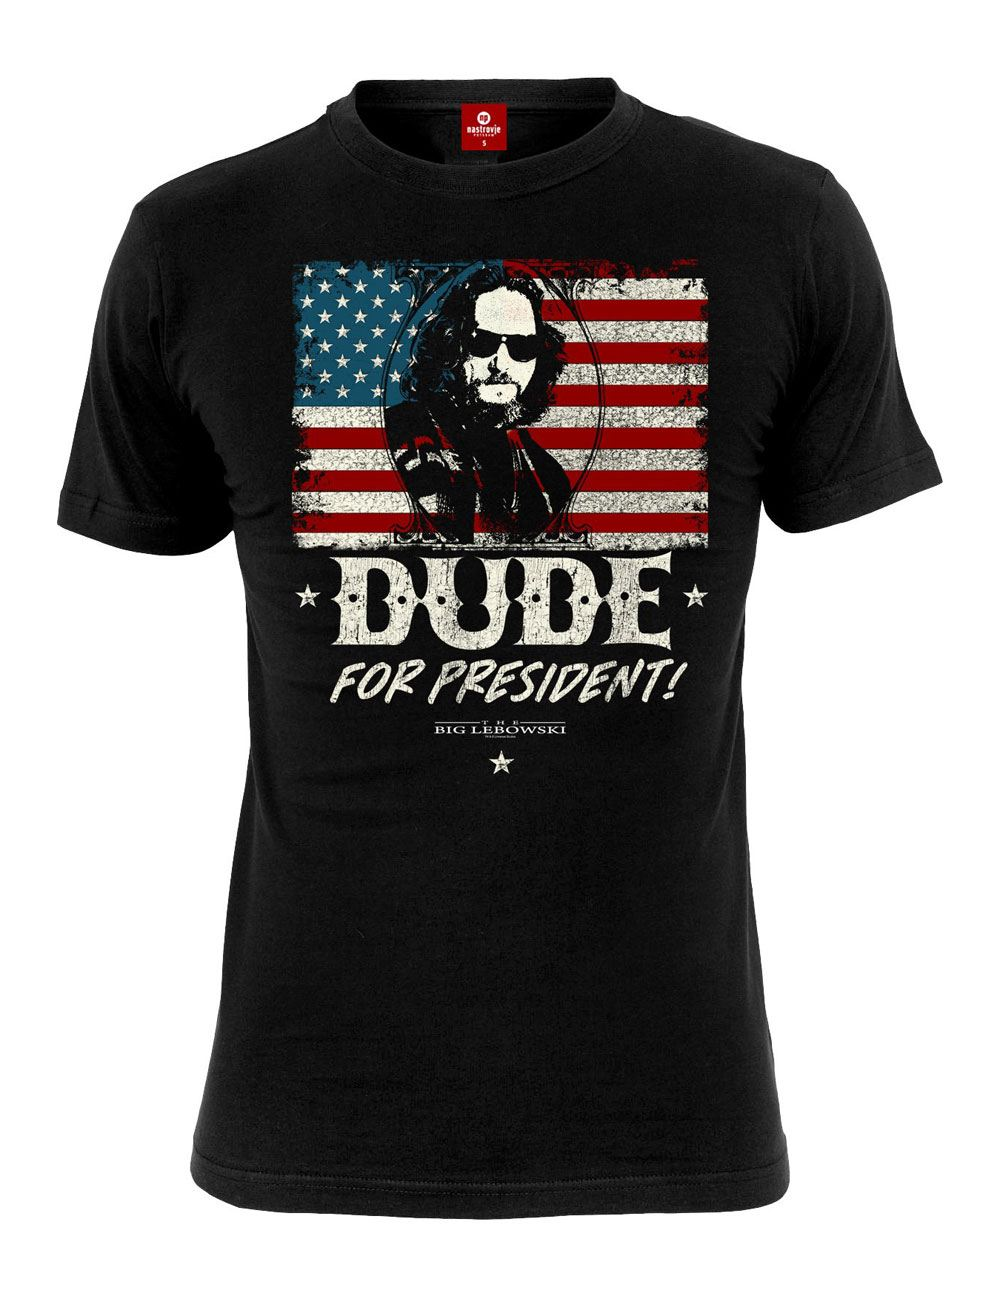 The Big Lebowski T-Shirt Dude for President (XL)